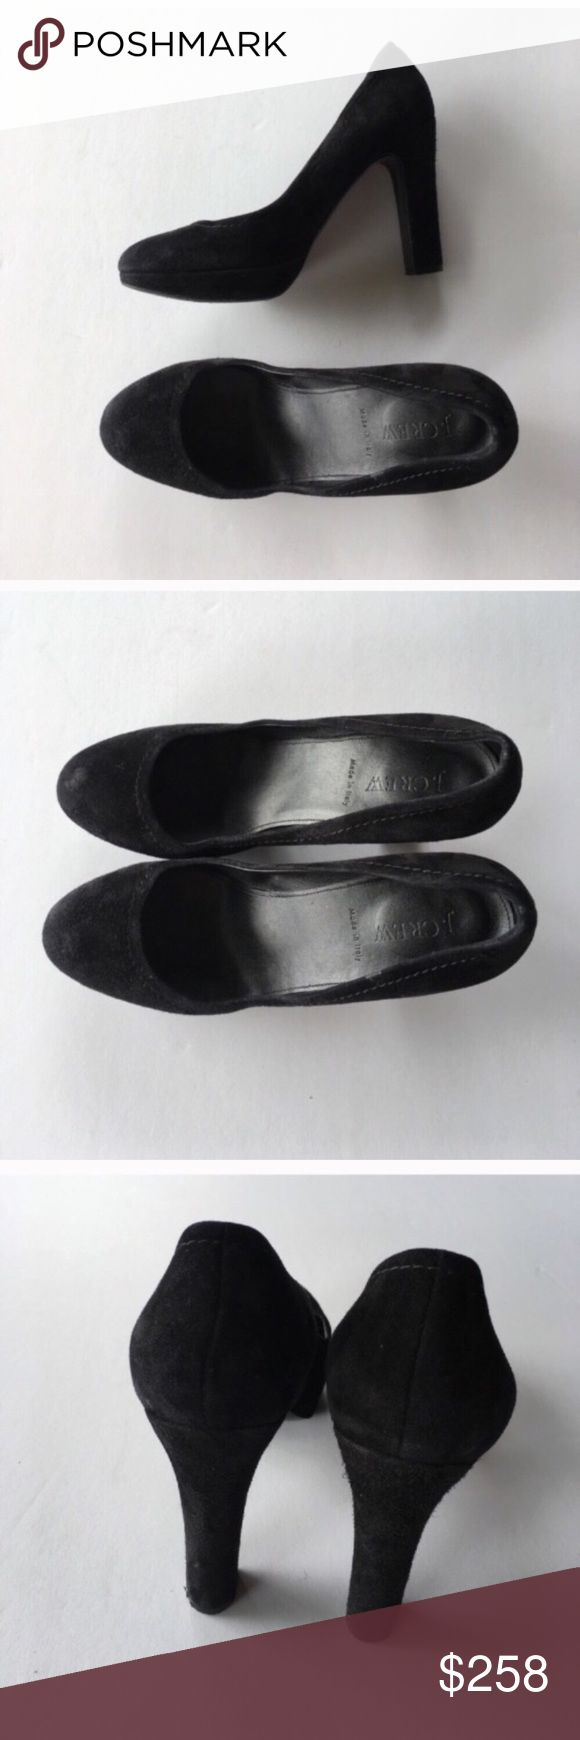 J. Crew black suede coddington pump heels Comfy and cute! In great shape, gently worn. Coddington Suede platform pumps. Perfect classic shoe. Leather and made in Italy. J. Crew Shoes Heels